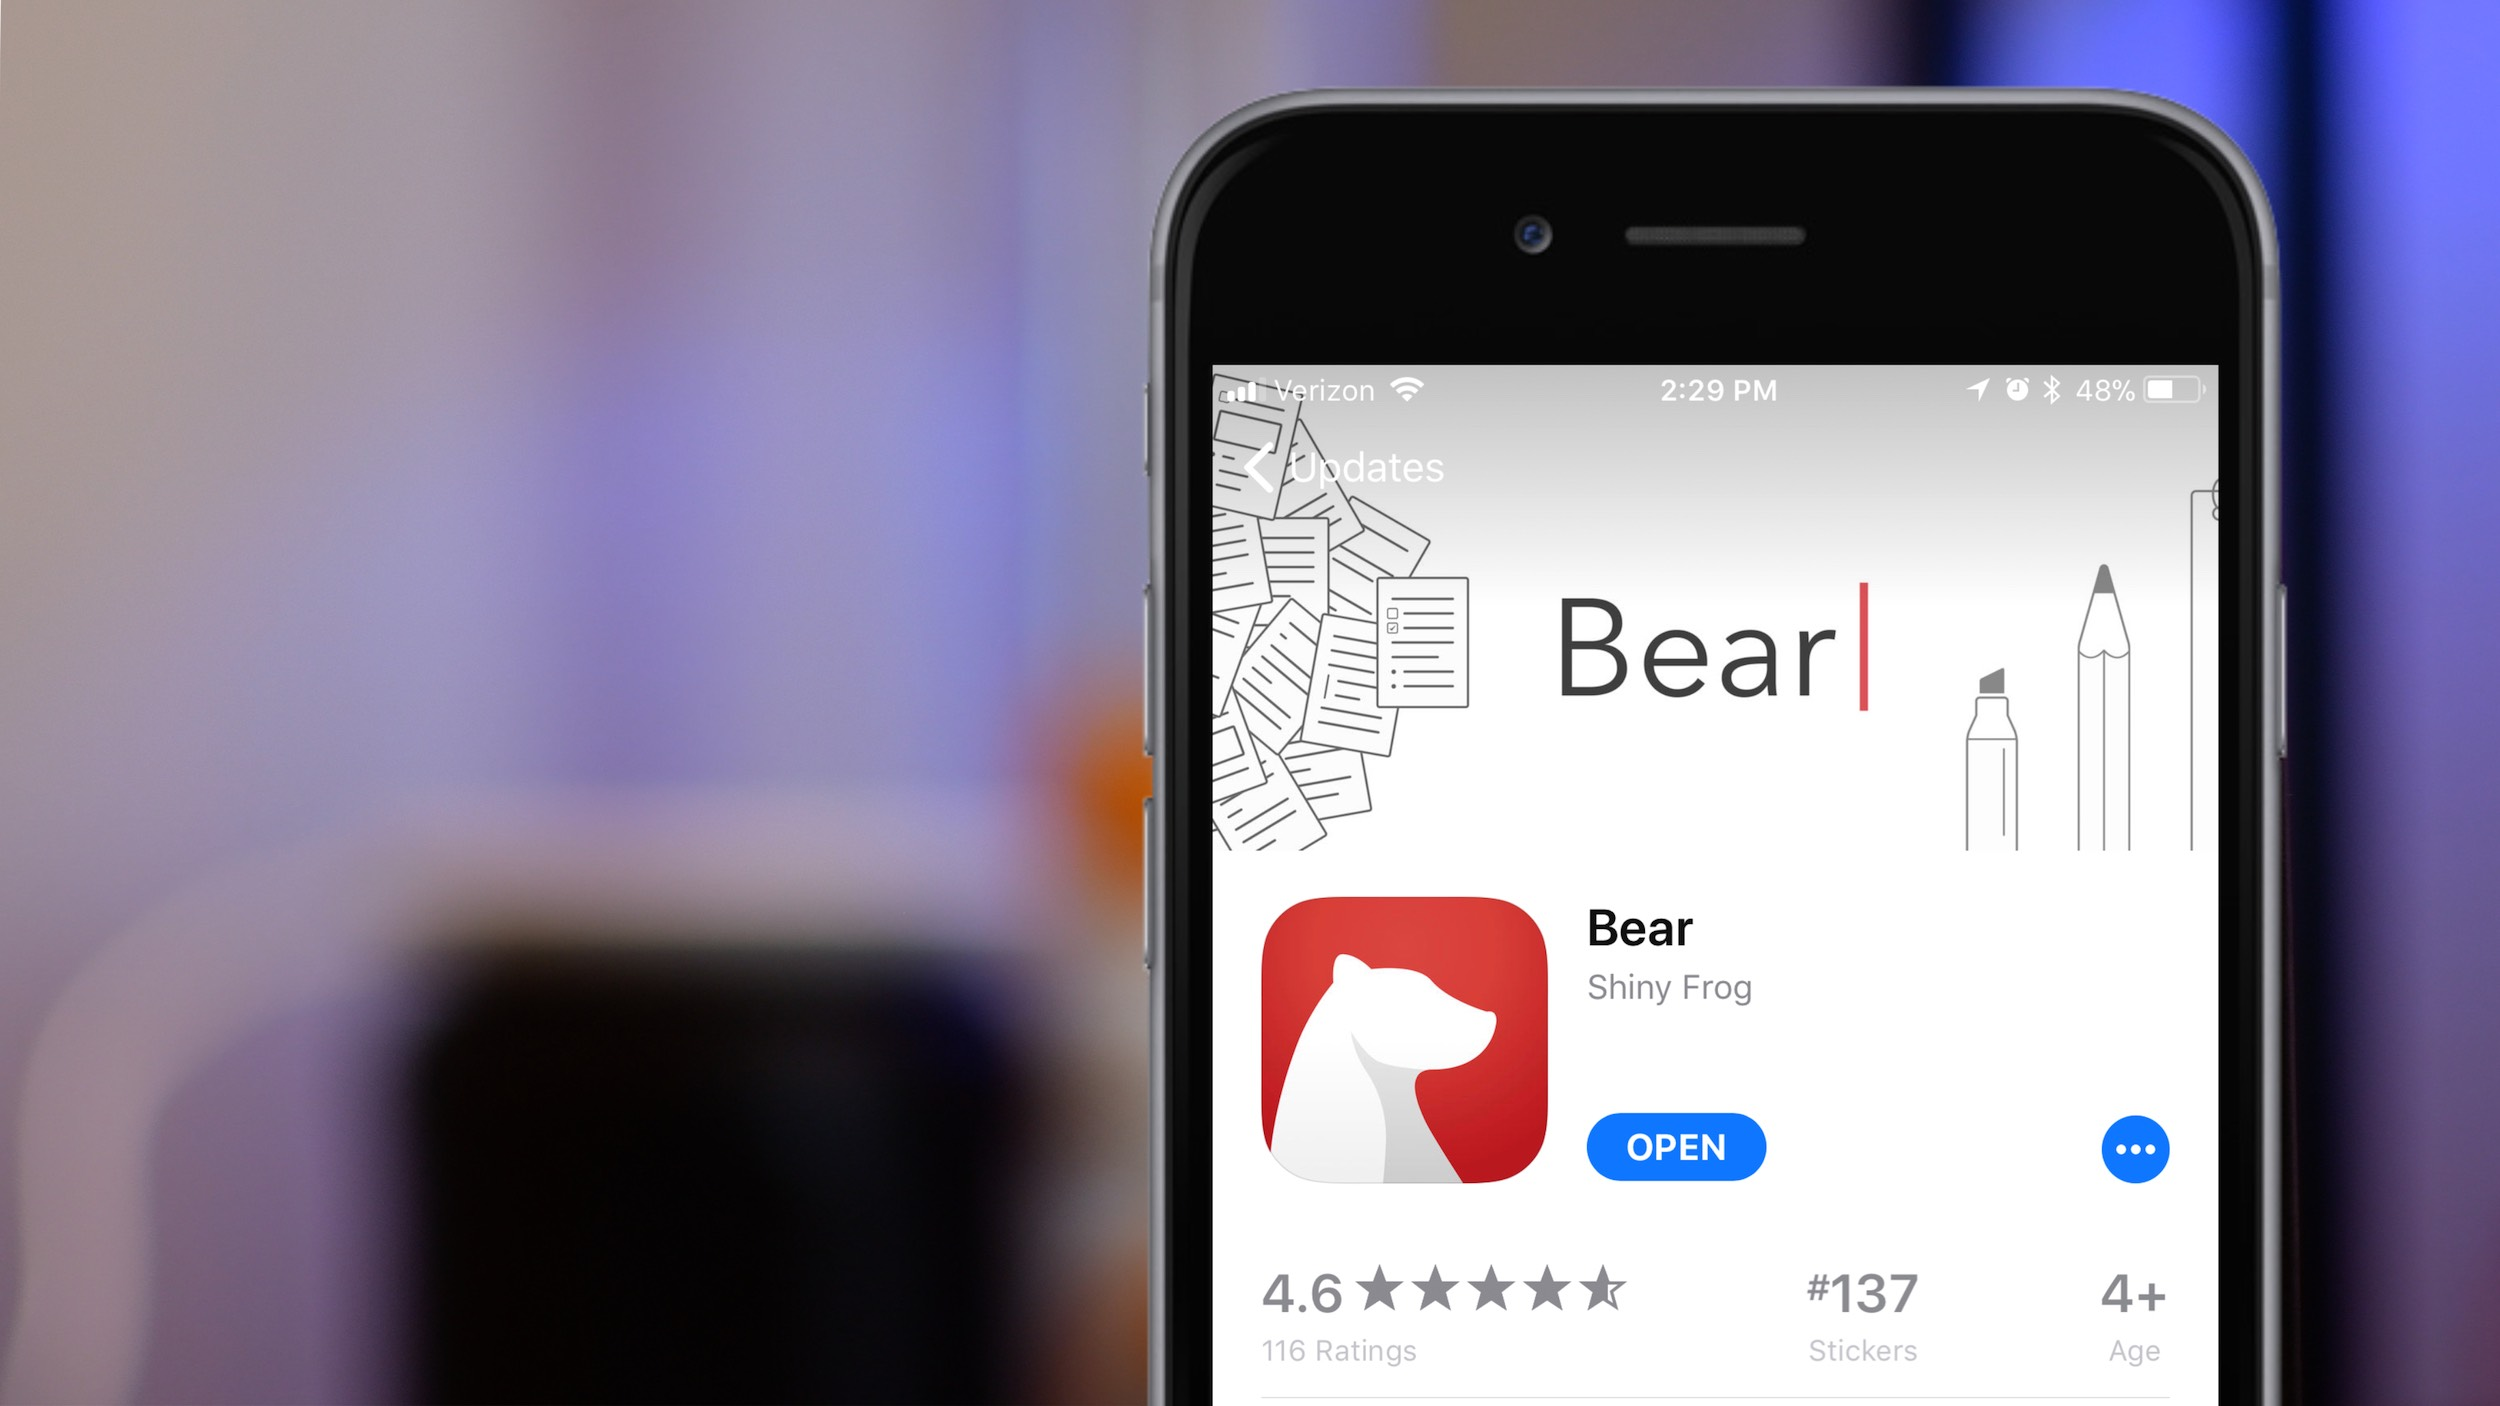 The app Bear appears on the screen of an iphone